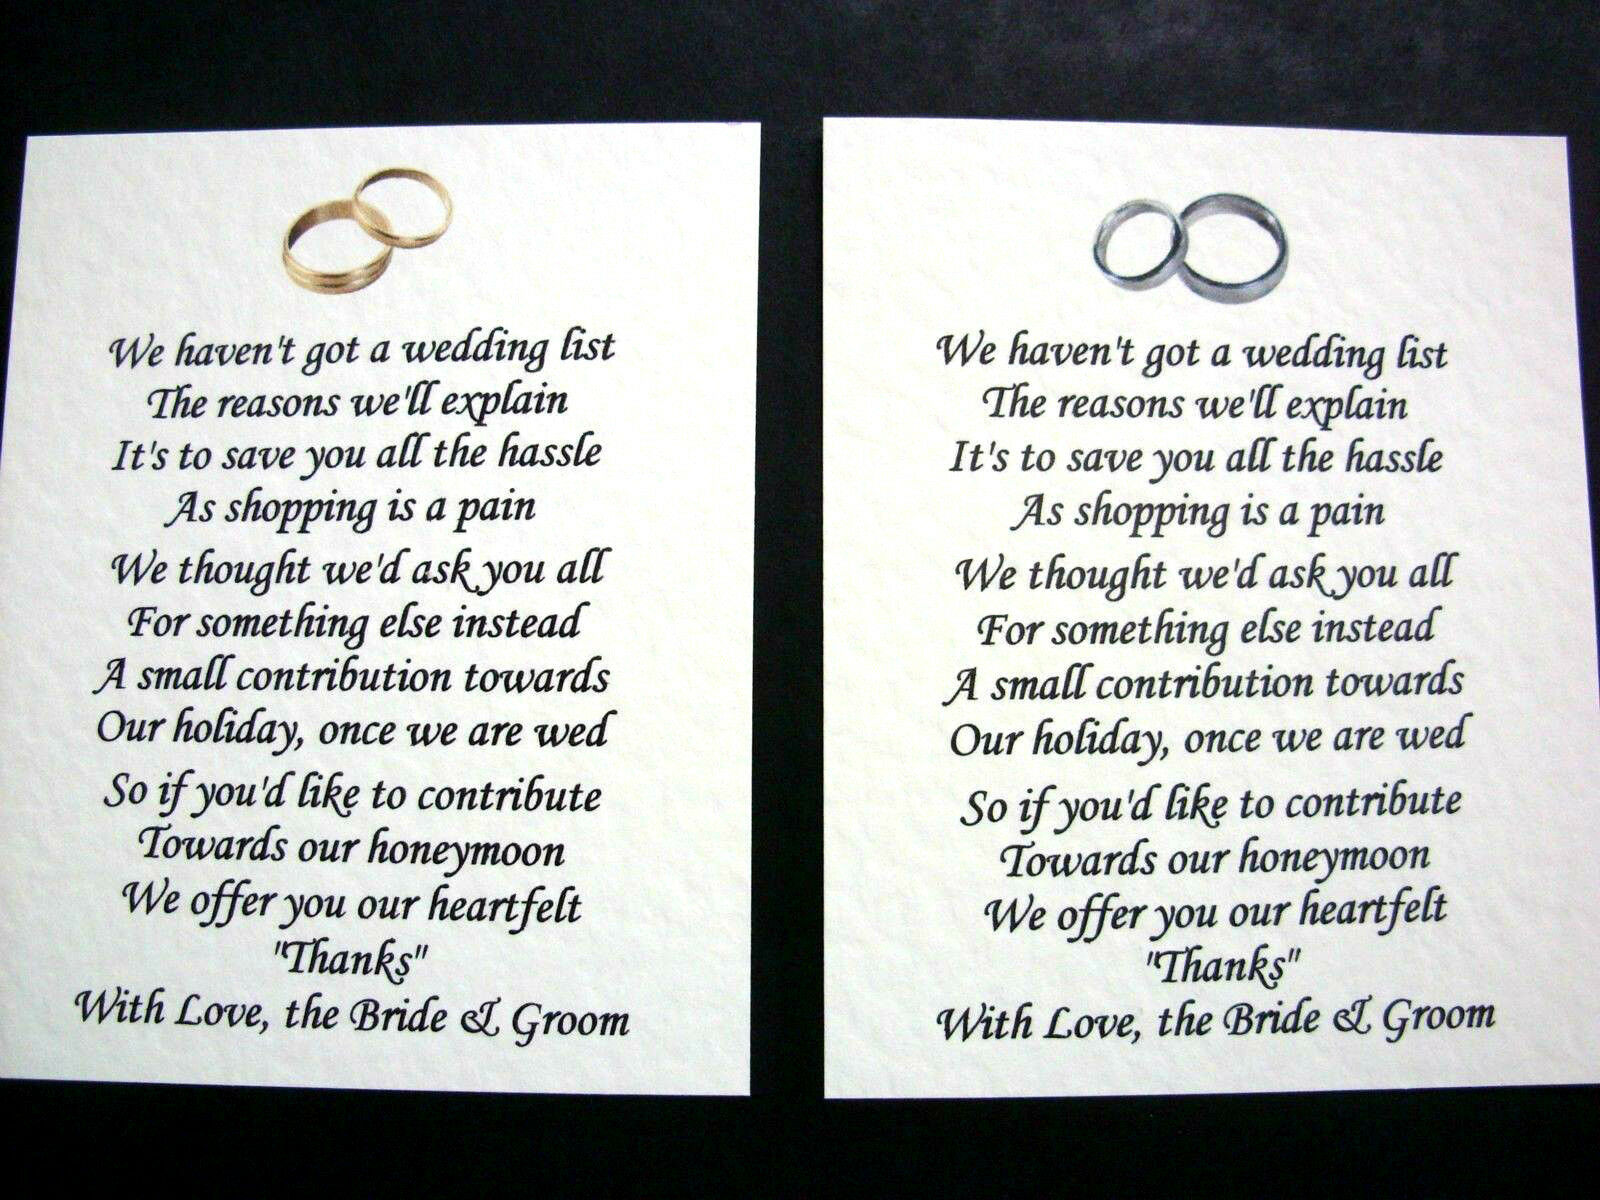 20 wedding poems asking for money gifts not presents ref no 1 - 28 ...